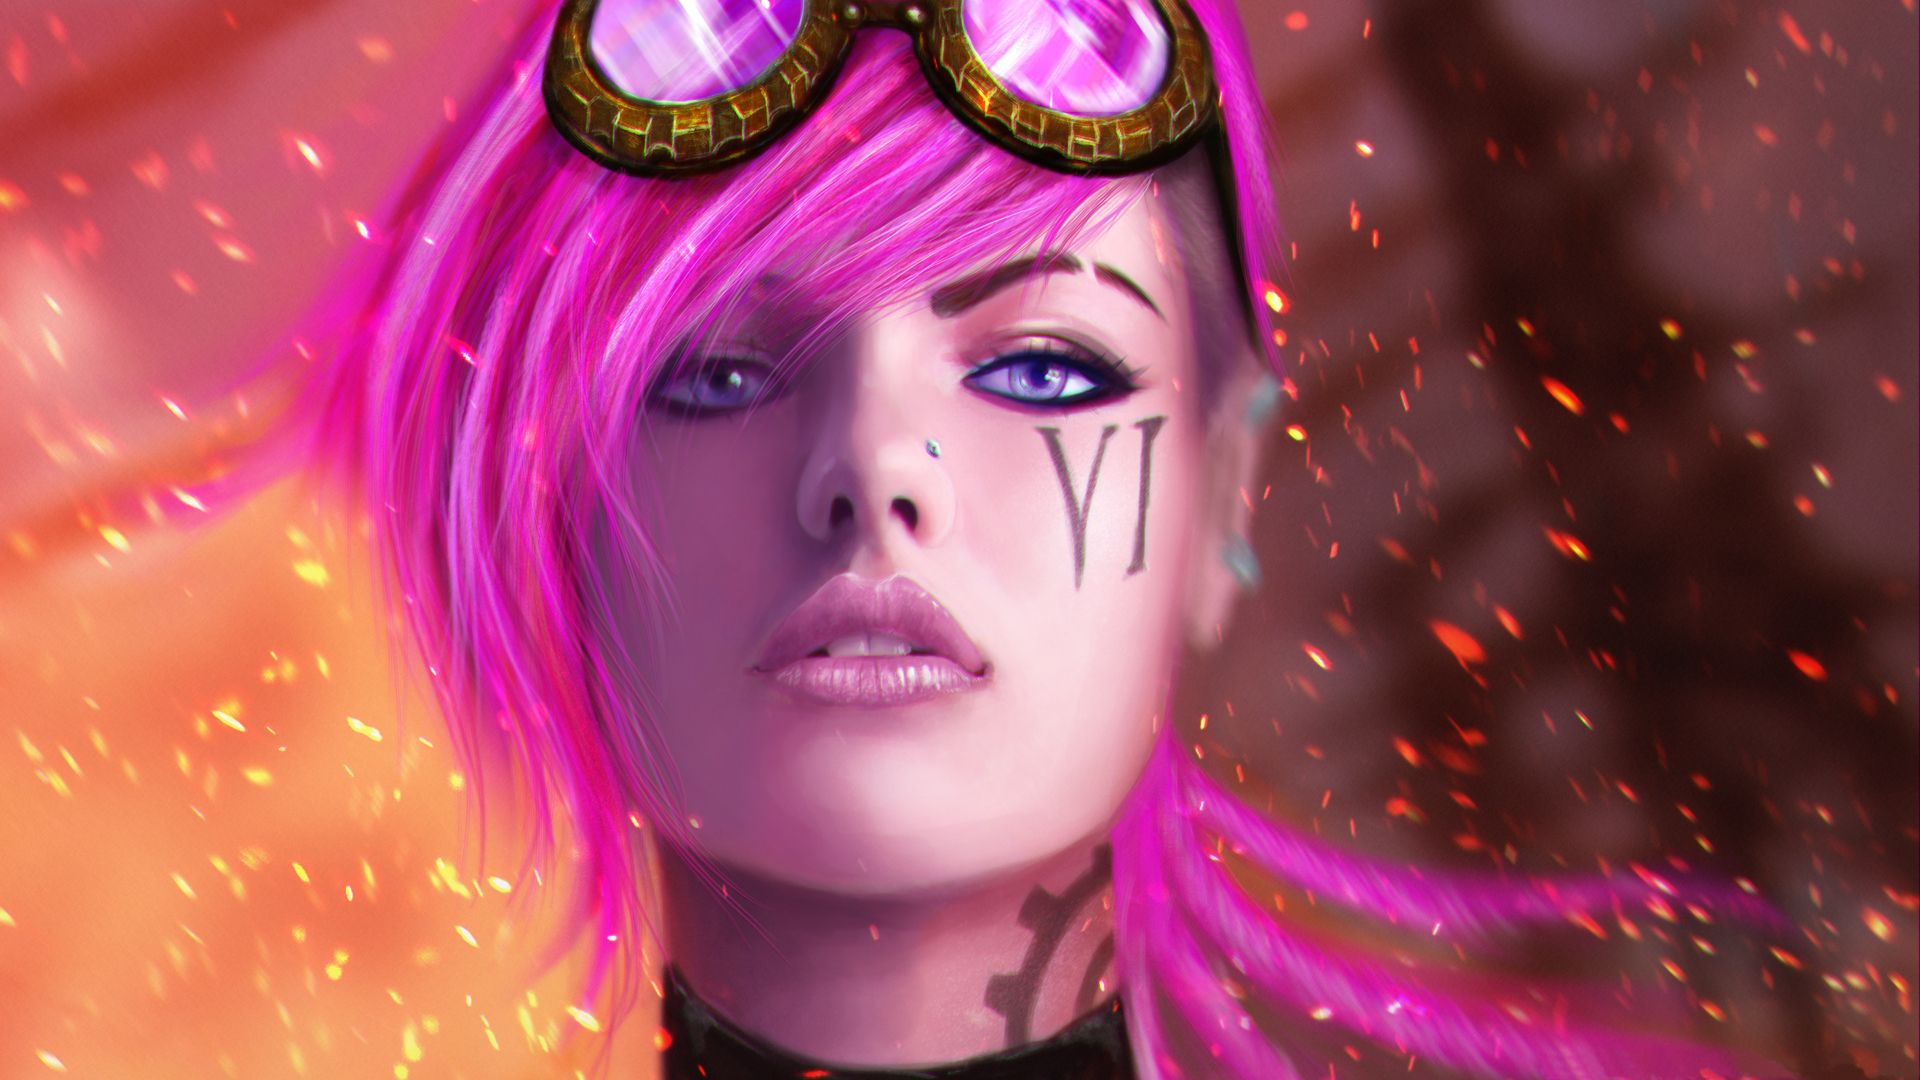 Vi Art Of Lol League Of Legends Game Vi League Of Legends League Of Legends